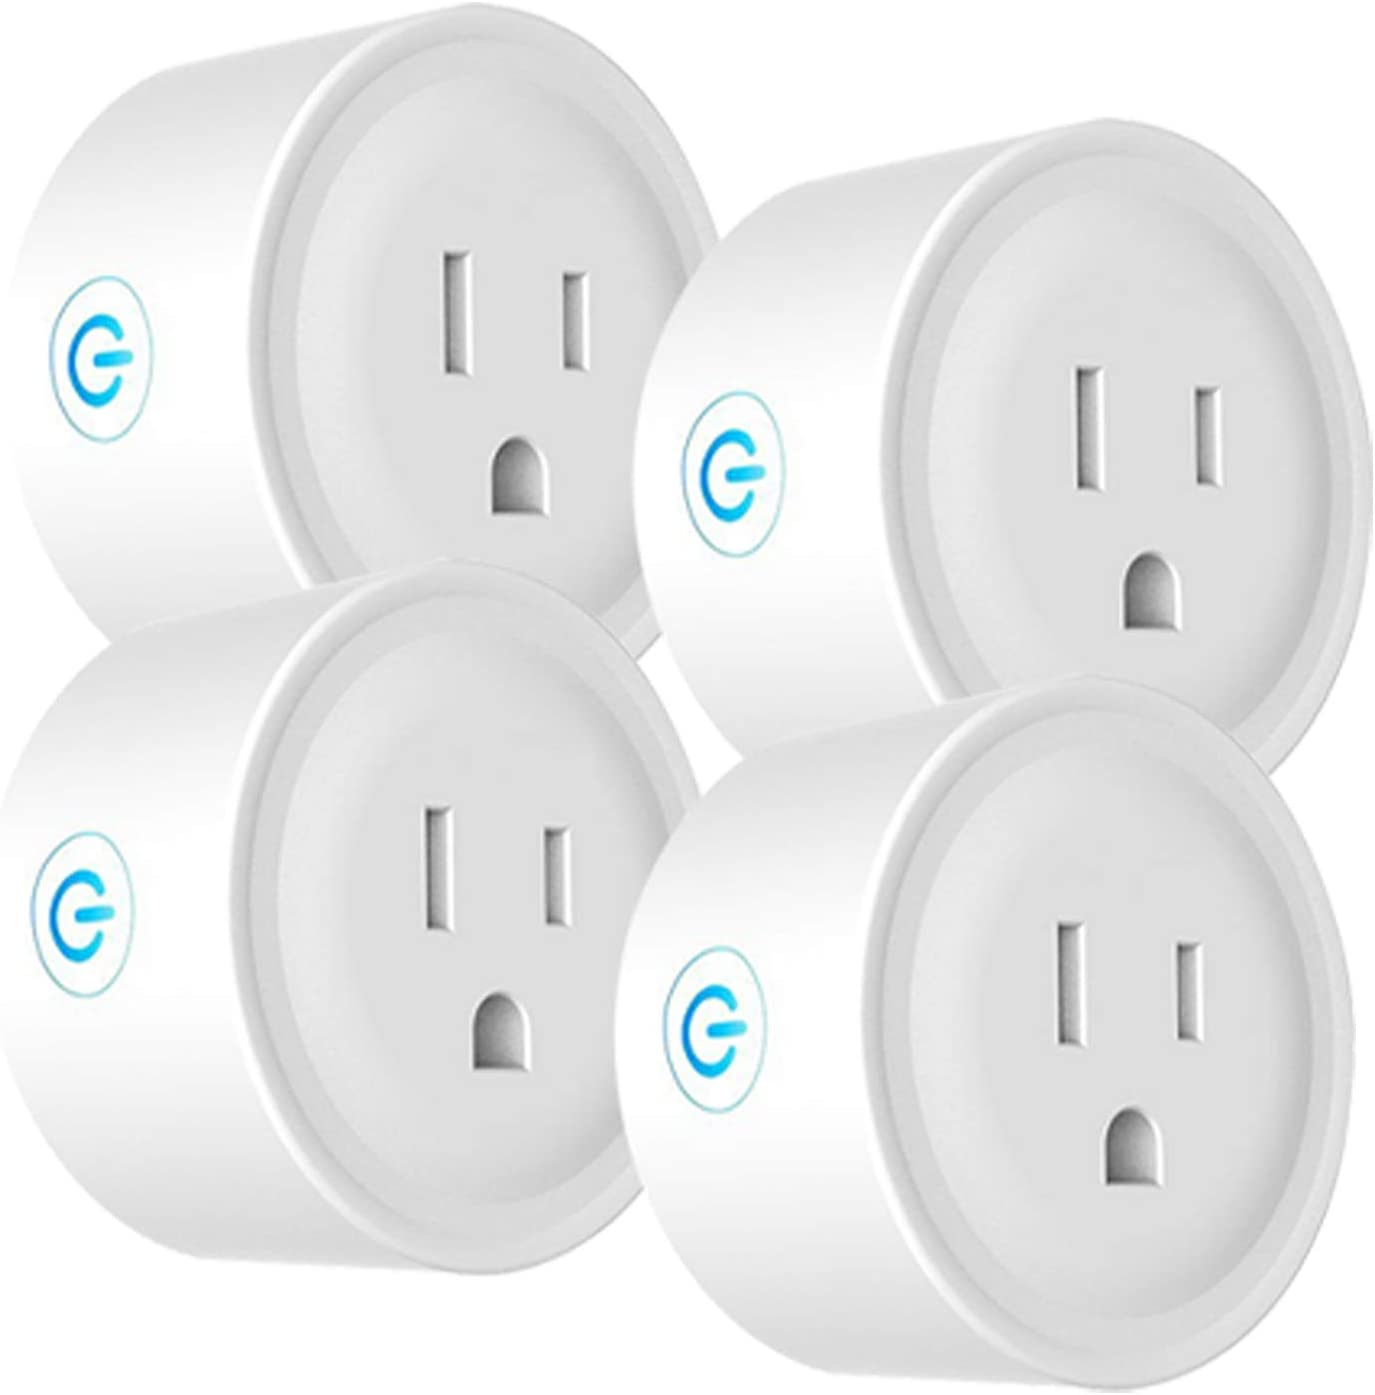 Deco Gear 4 Pack WiFi Smart Plug (Compatible with Amazon Alexa & Google Home), Control Appliances and Electronics from Anywhere